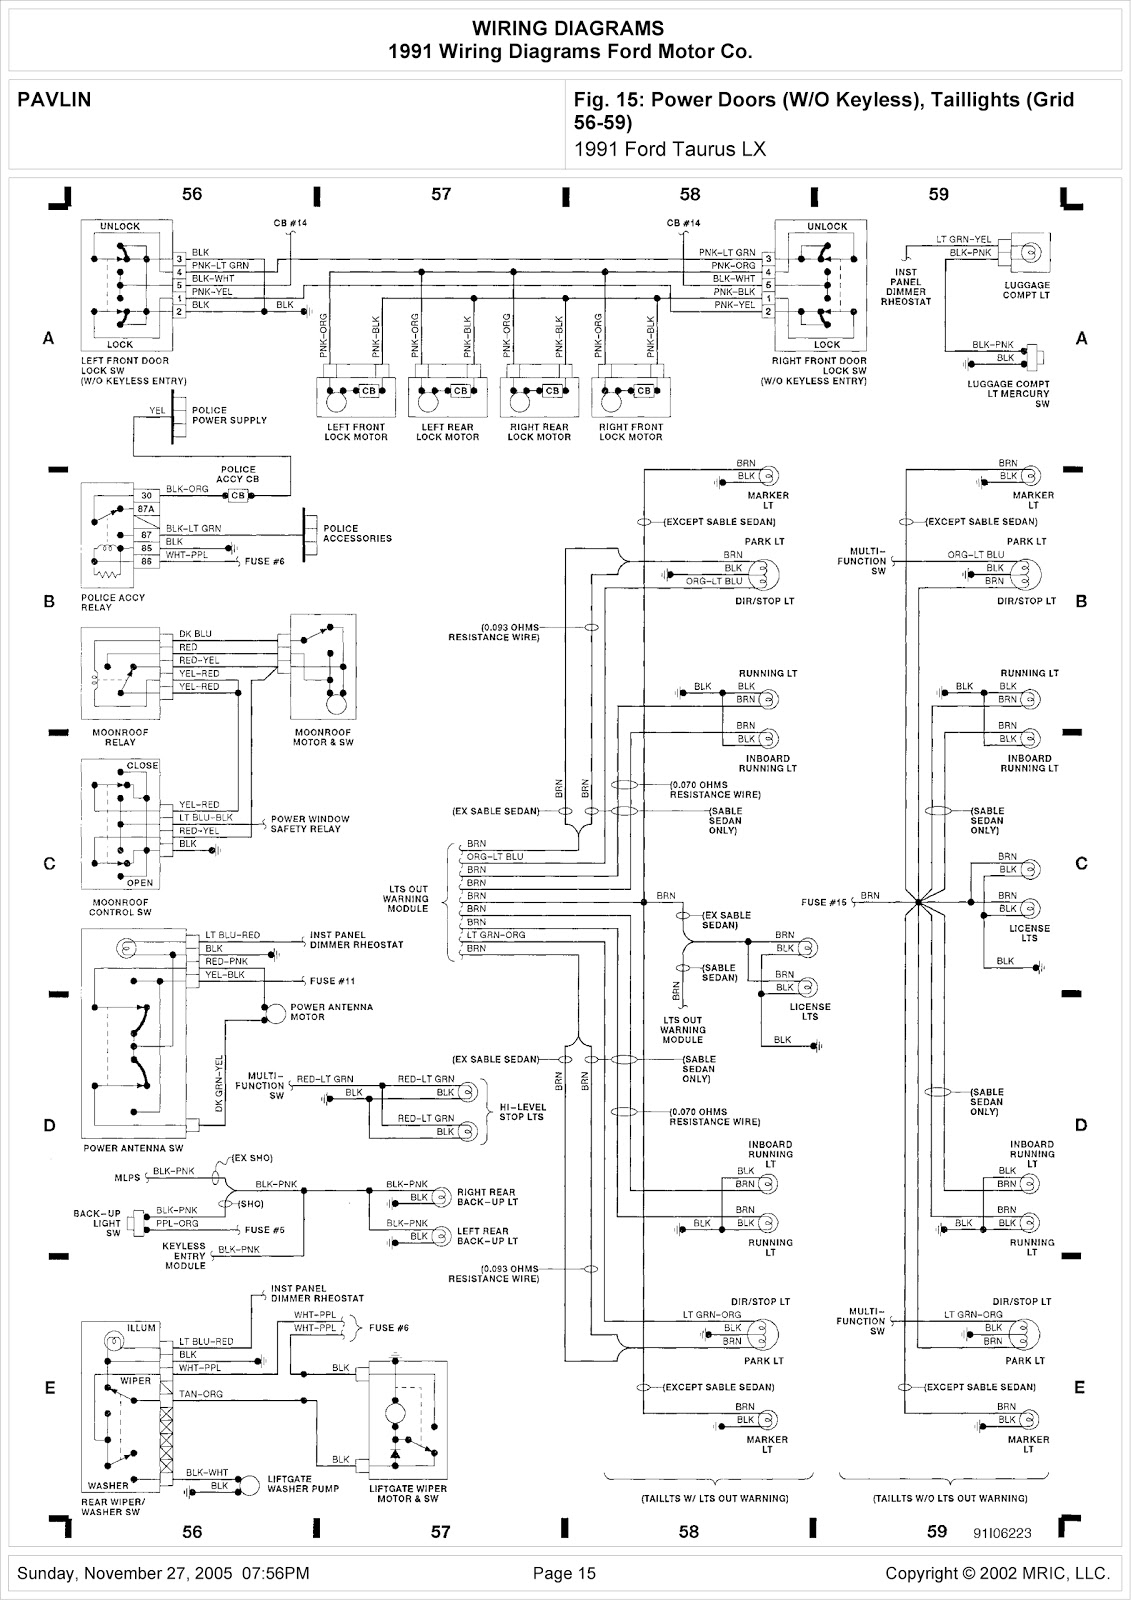 2002 ford taurus charging system wiring diagram 1991 ford taurus lx system wiring diagram for keyless entry 1991 ford taurus lx system wiring diagram power doors ...